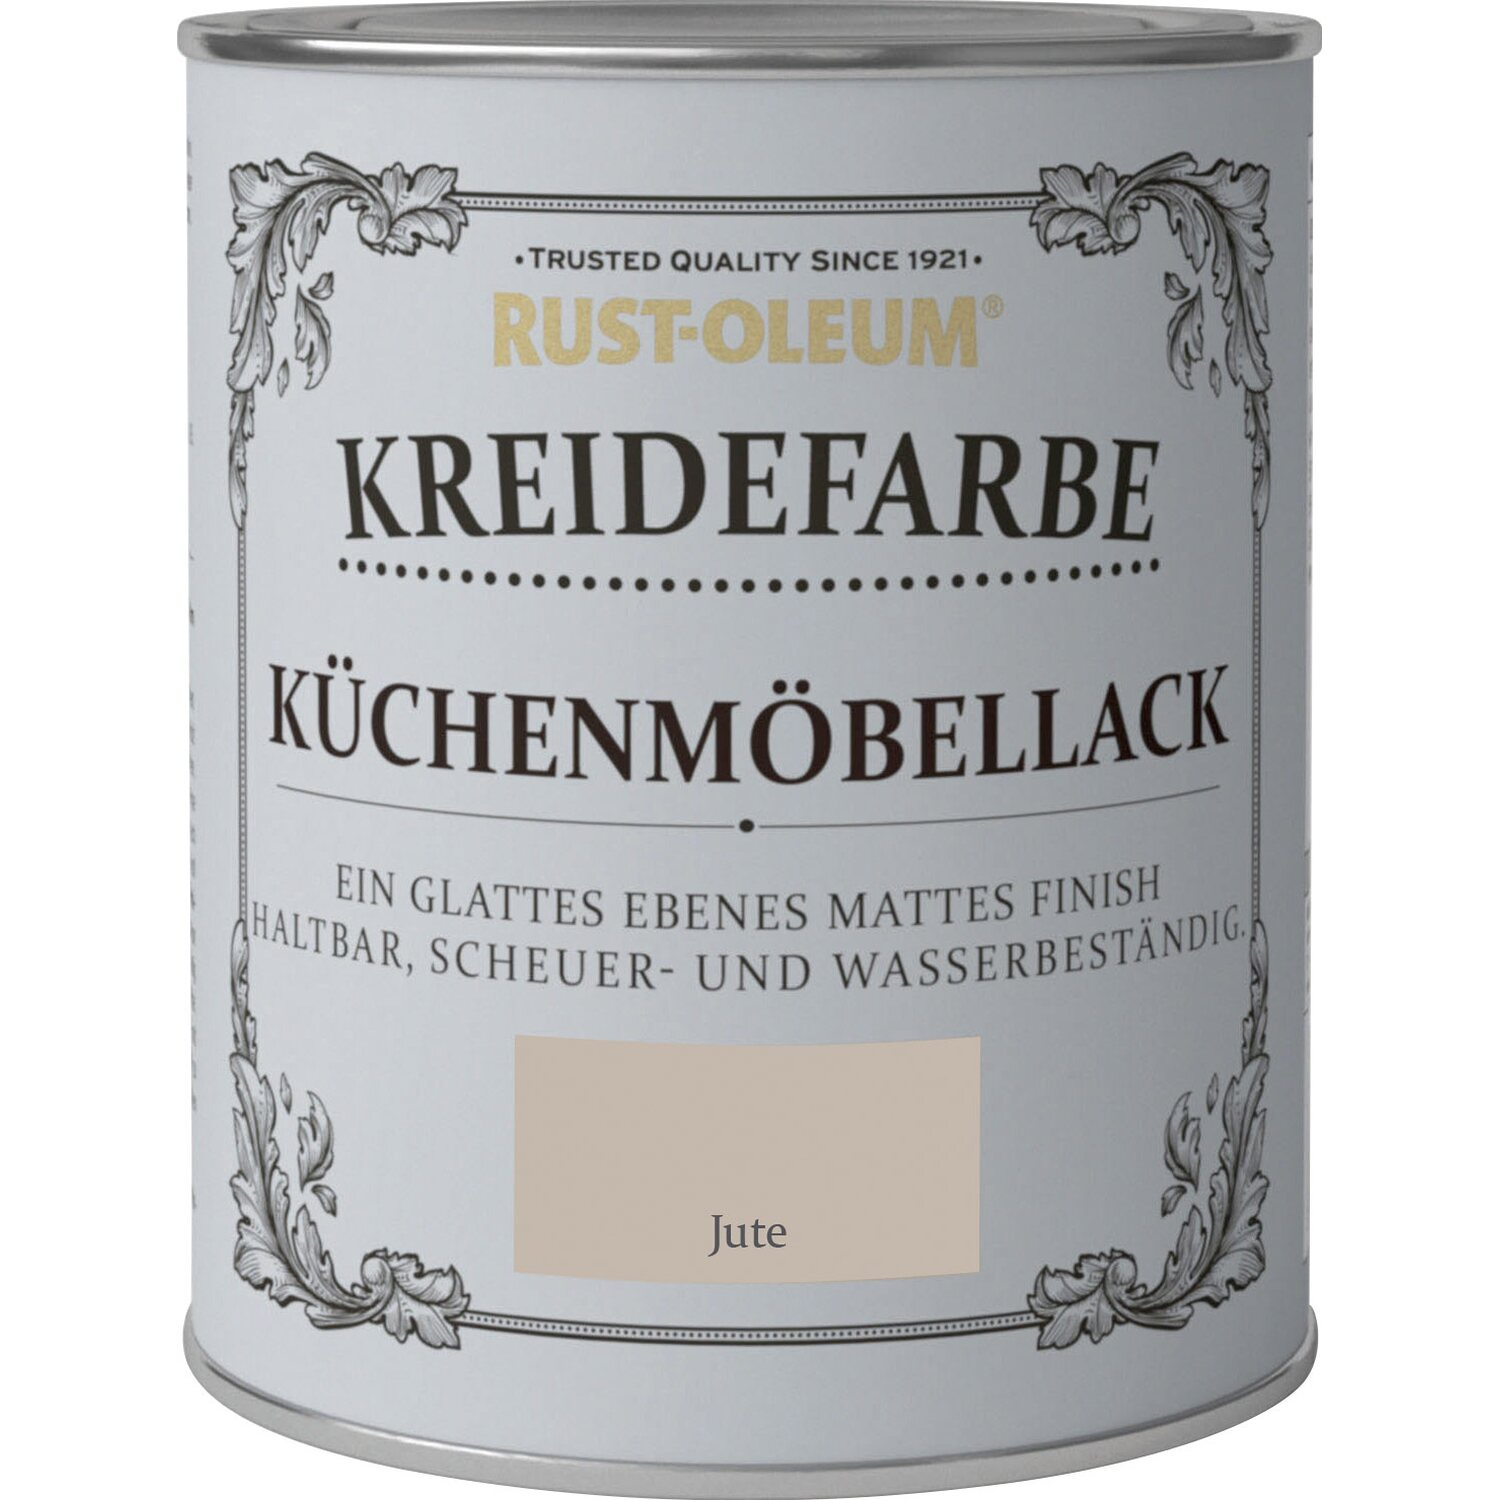 rust oleum kreidefarbe k chenm bellack jute matt 750 ml. Black Bedroom Furniture Sets. Home Design Ideas